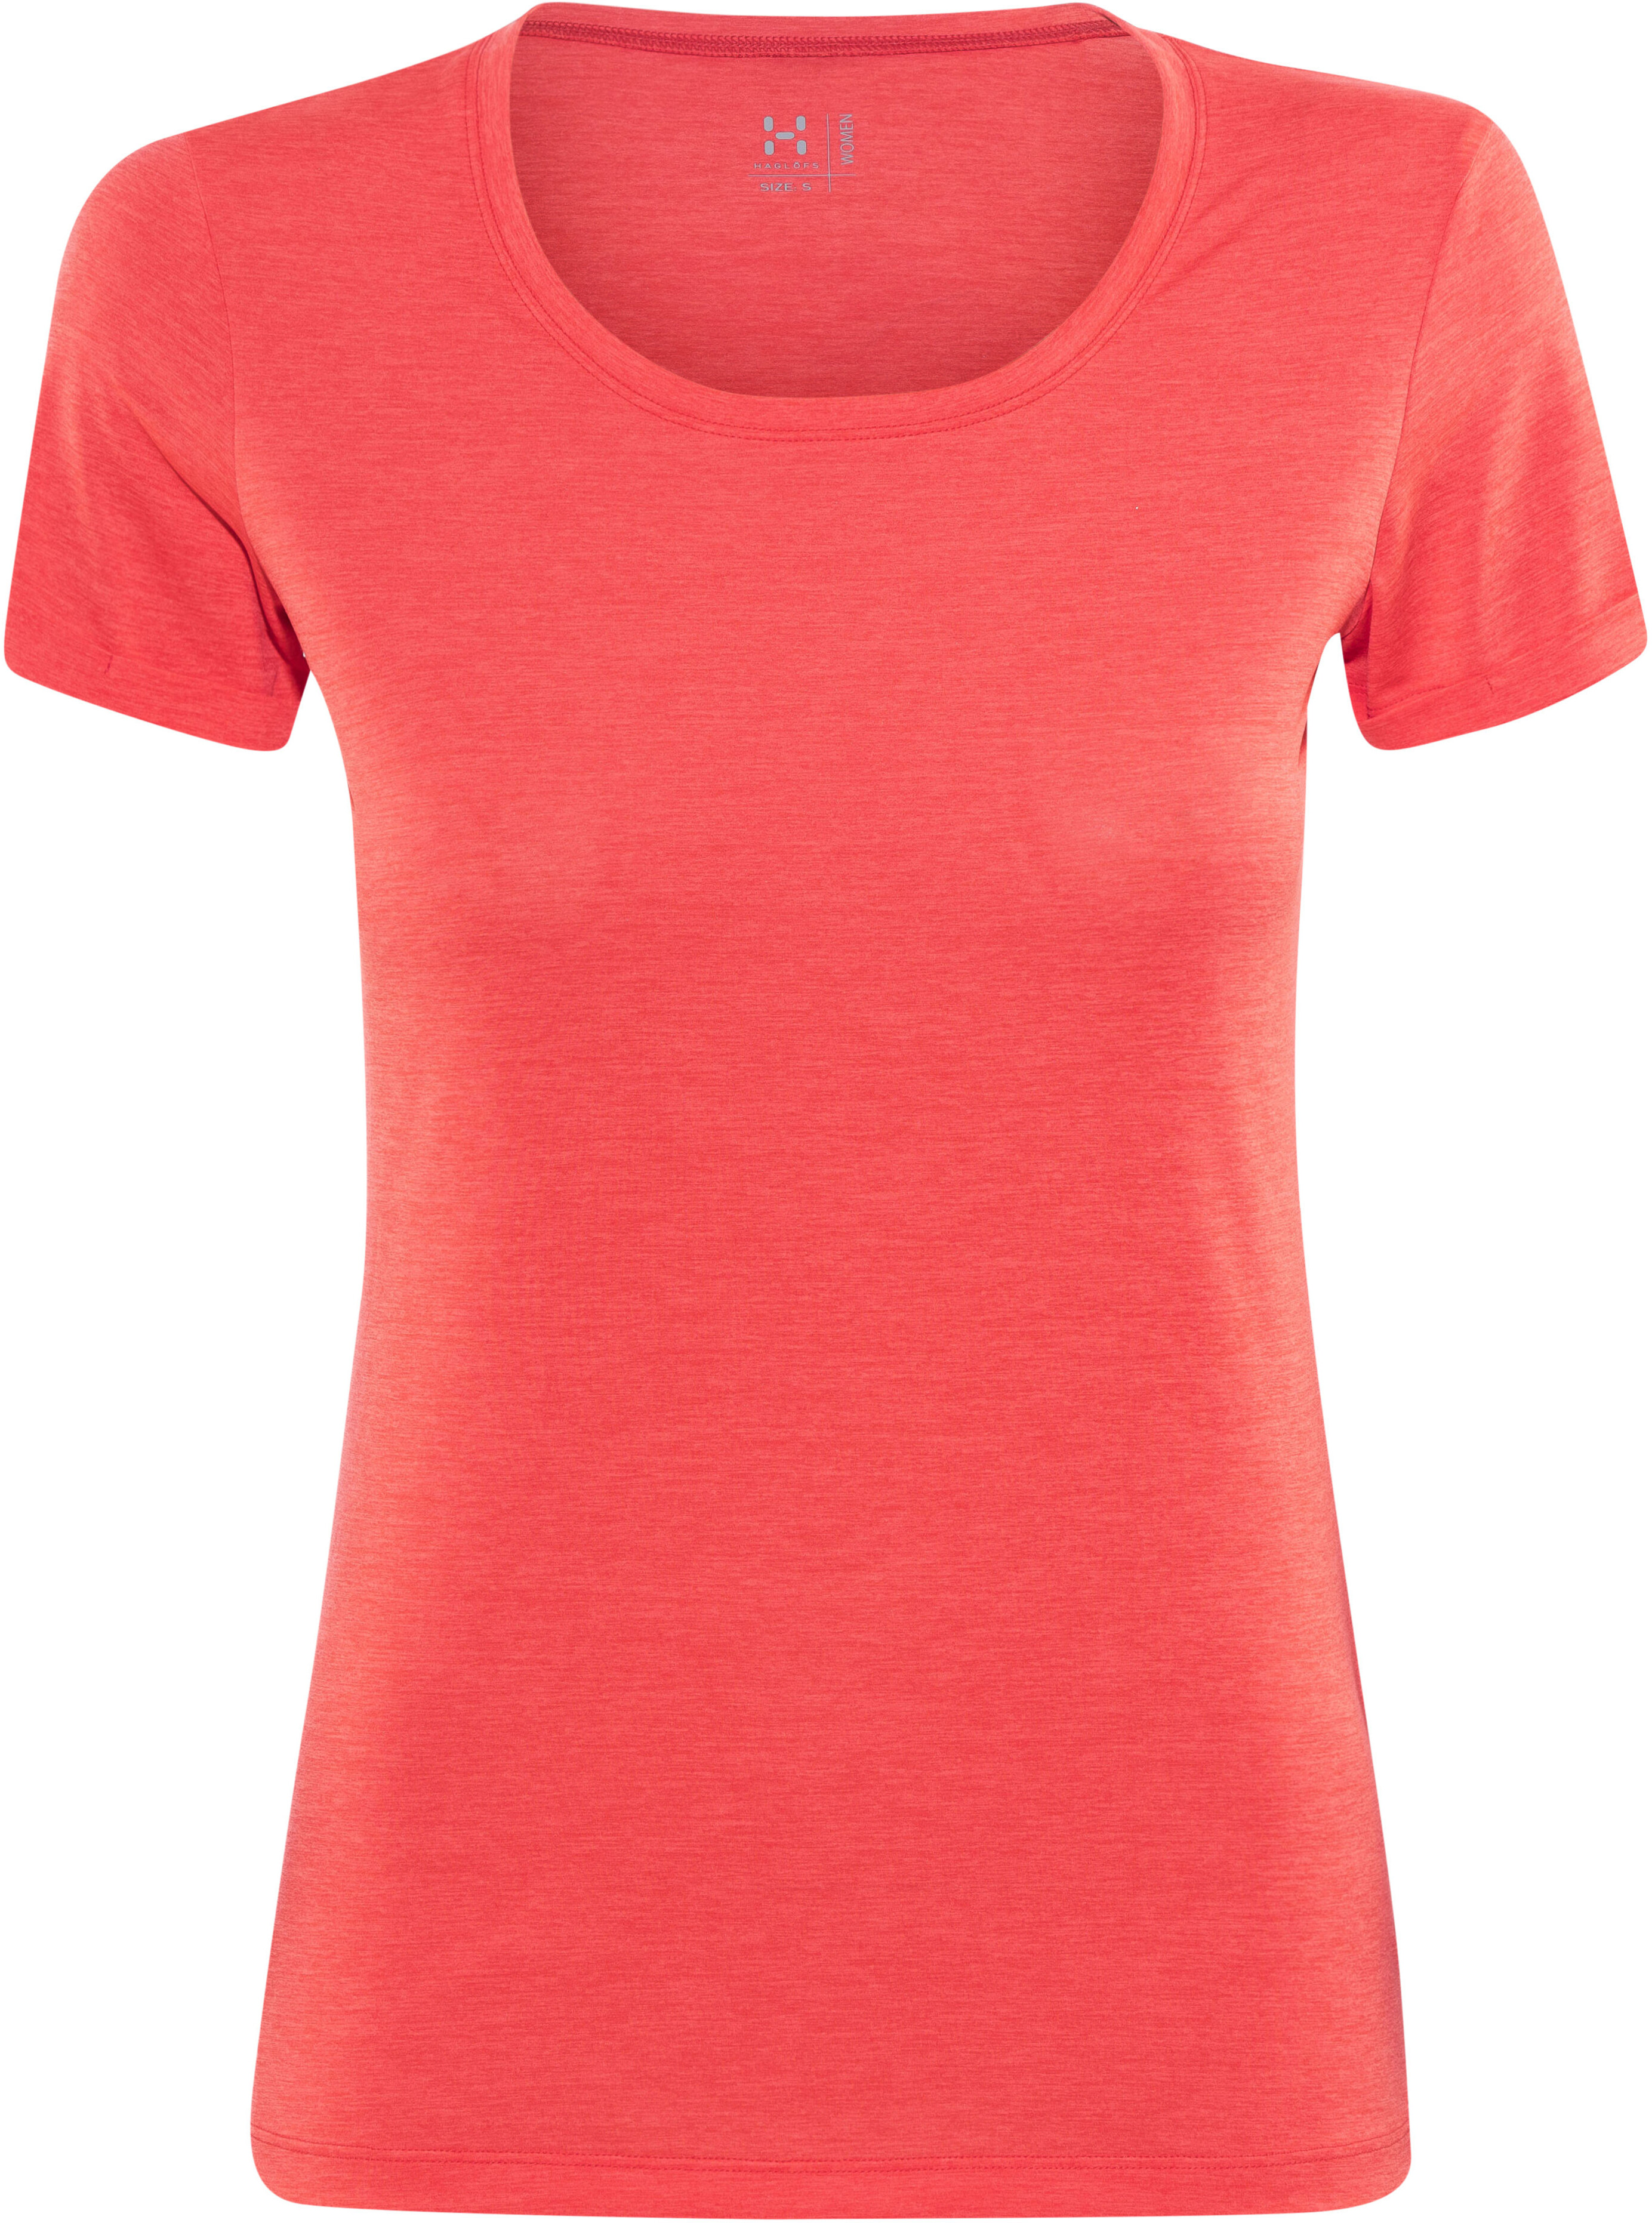 d677c67b2 Haglöfs Ridge Hike Tee Women carnelia | campz.at